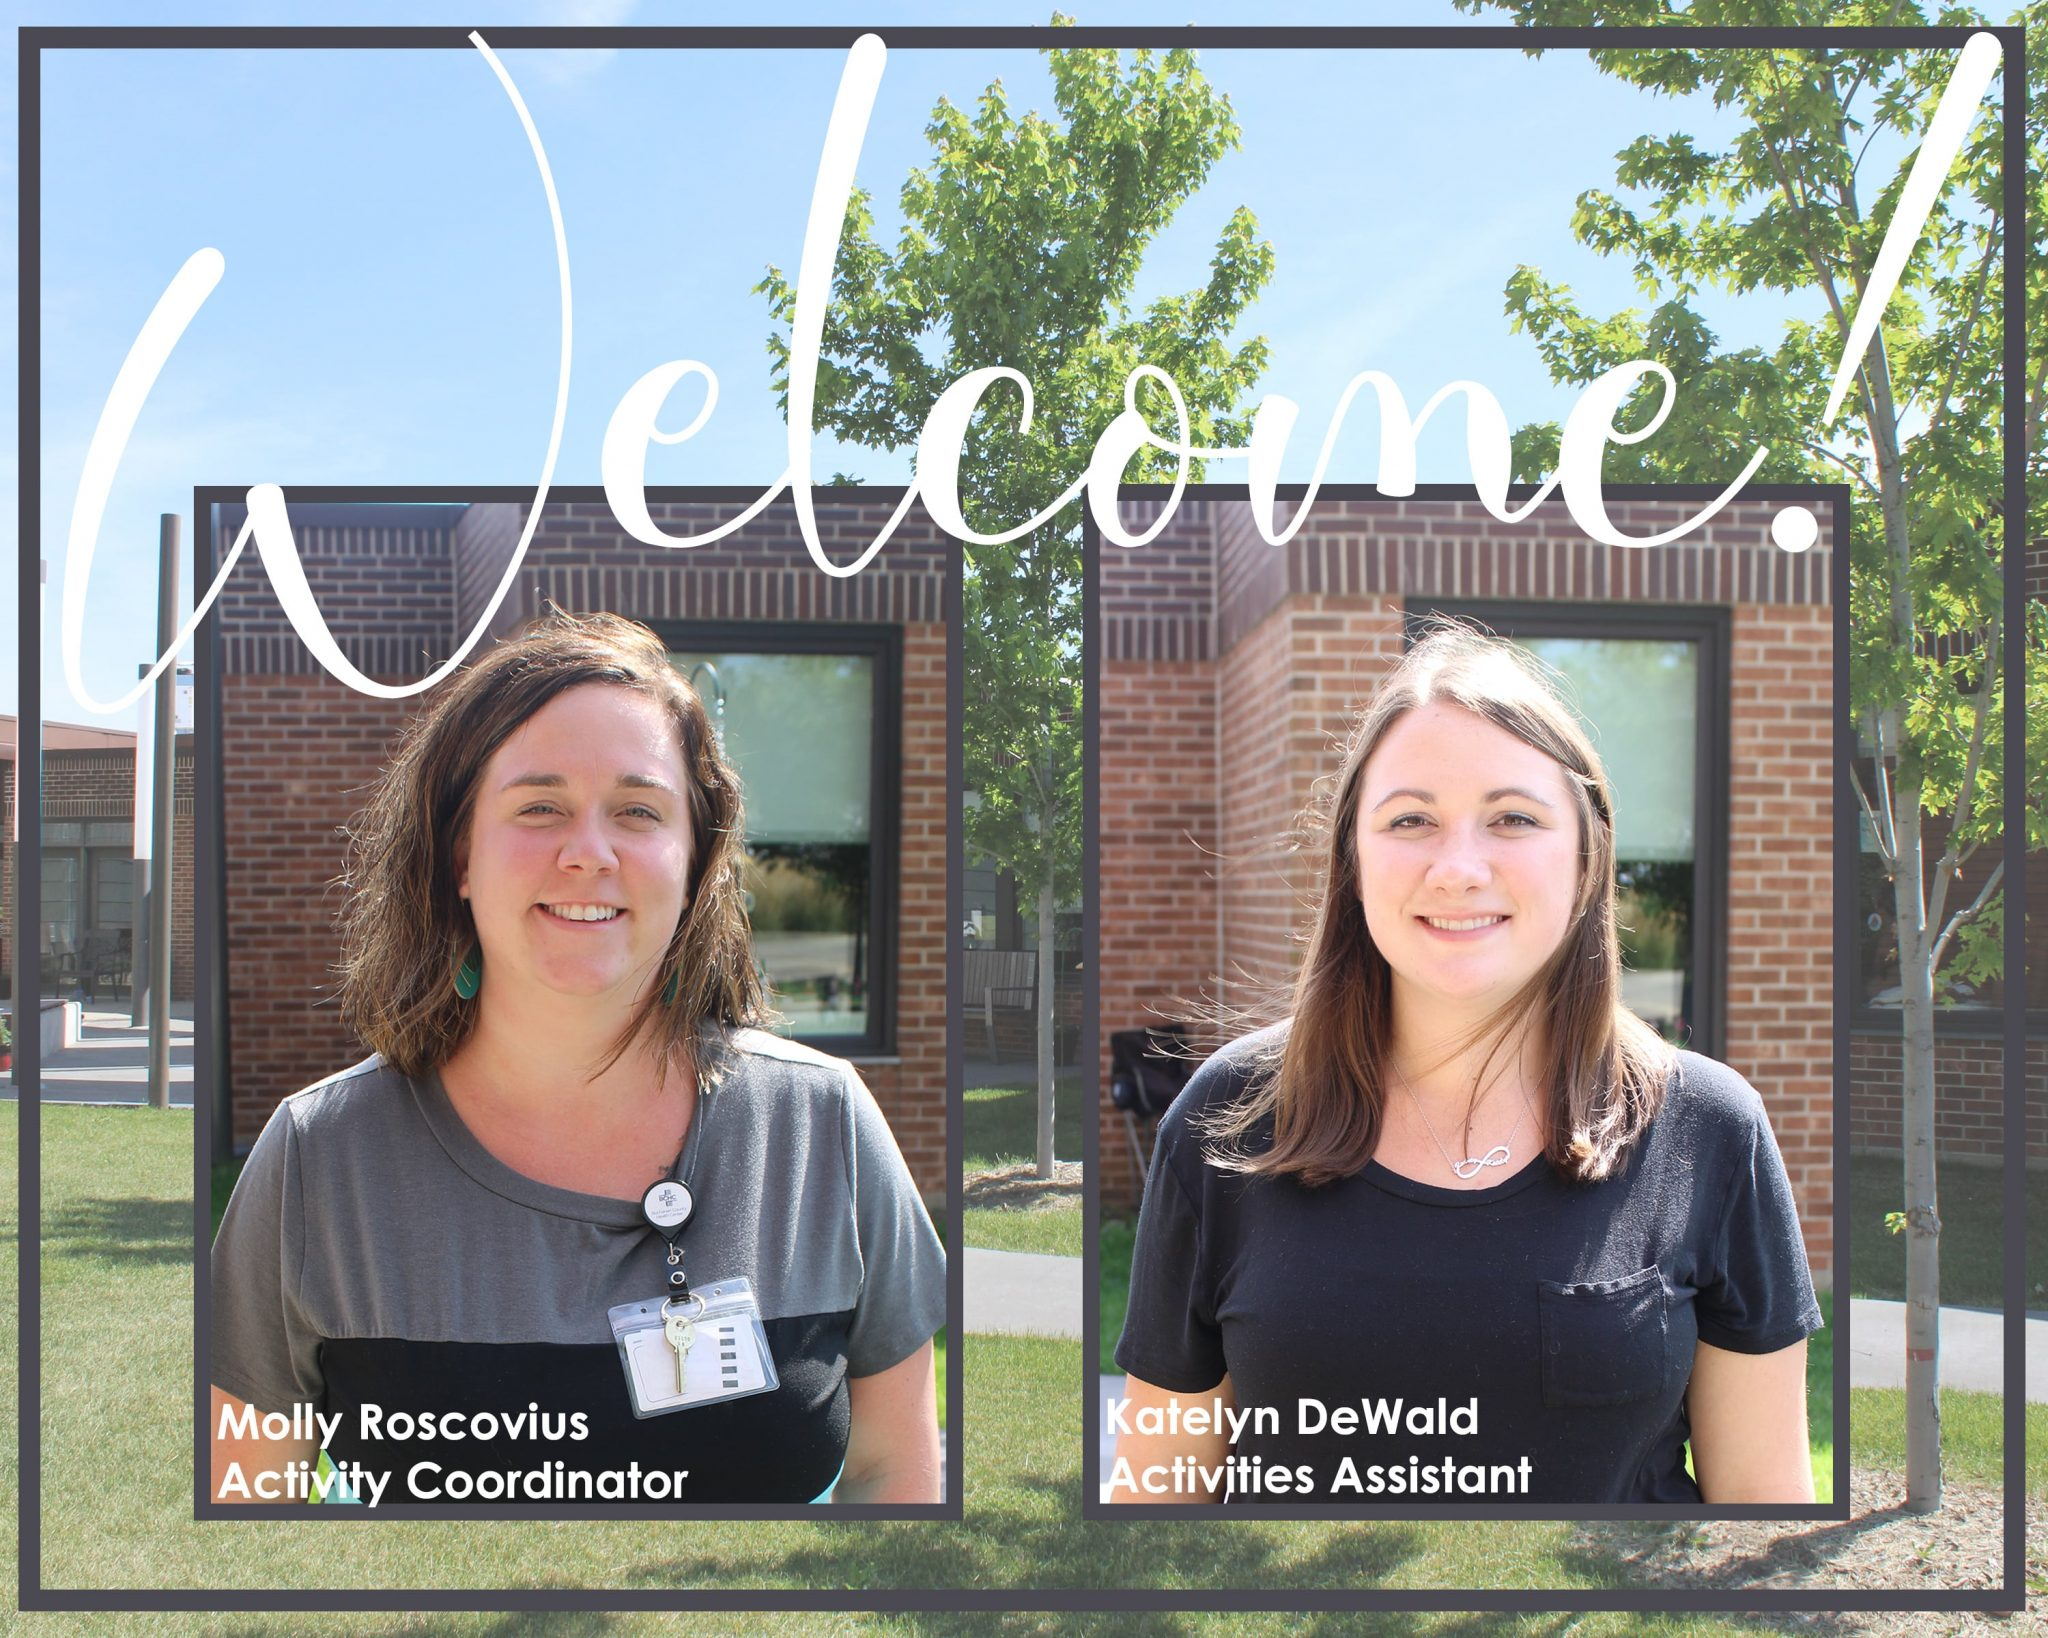 BCHC Welcomes New Faces to the Activities Department at Lexington Estate